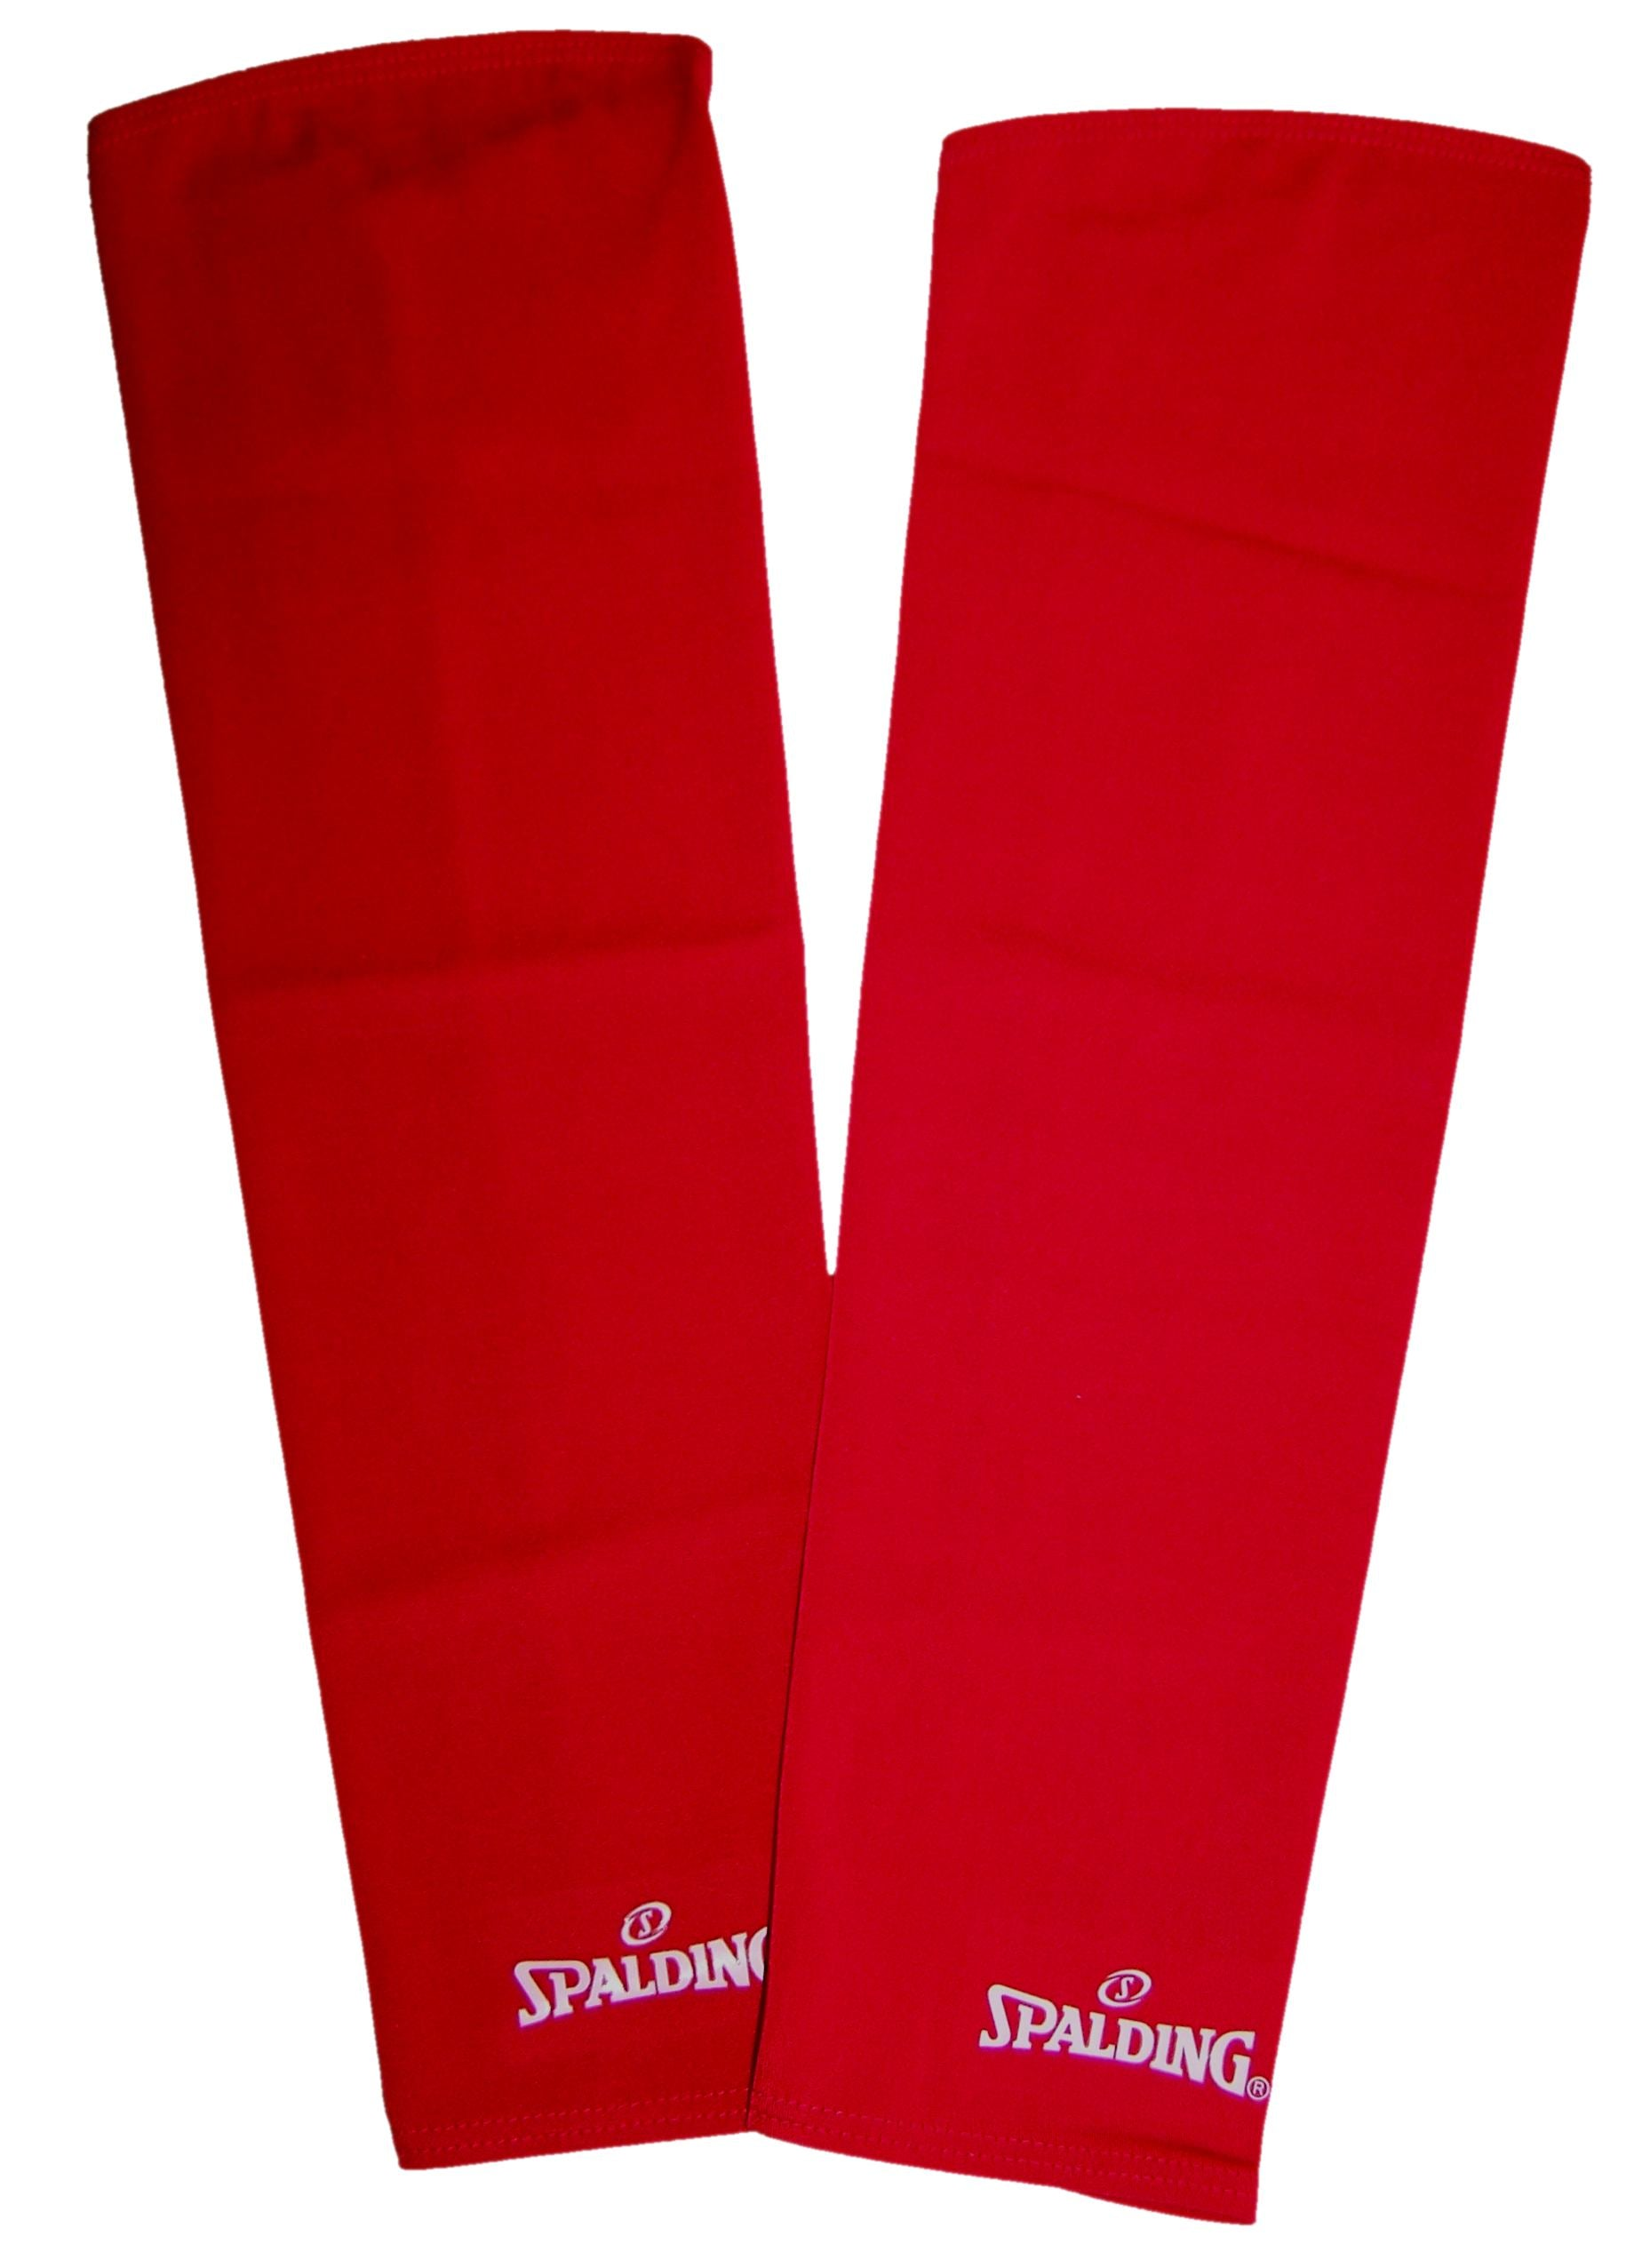 Spalding Shooting Compression Sleeves (Pack of two) - Red-L SP-3009284-03